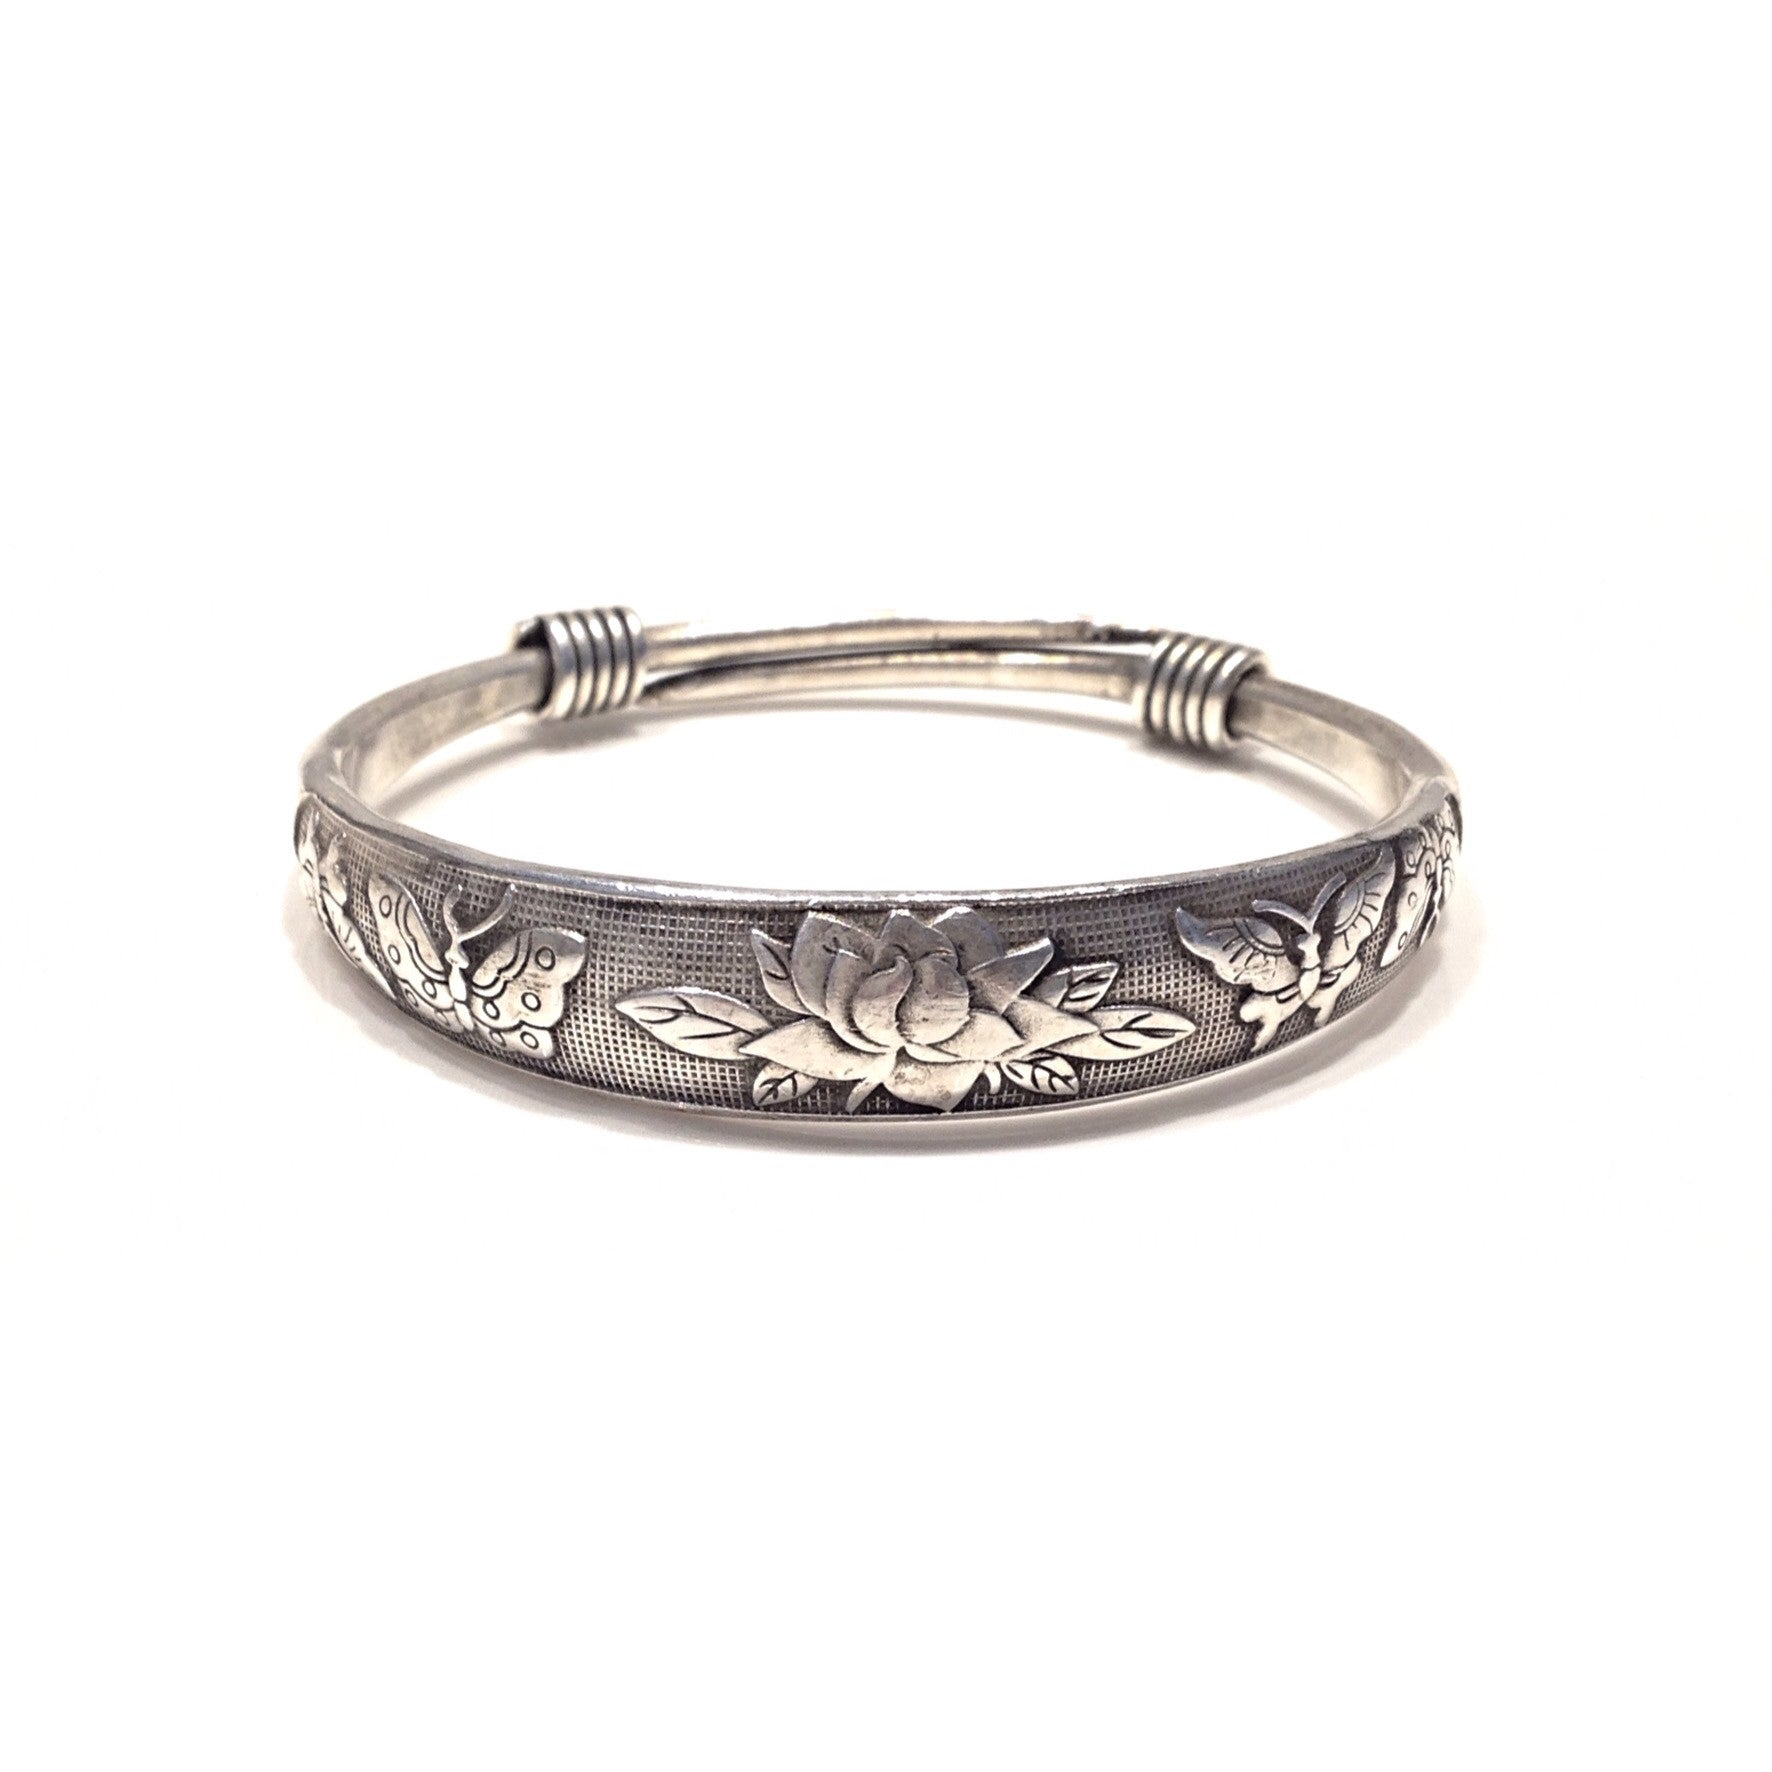 Silver Bangle With Floral Pattern $16 | Bracelet | Light Years Jewelry